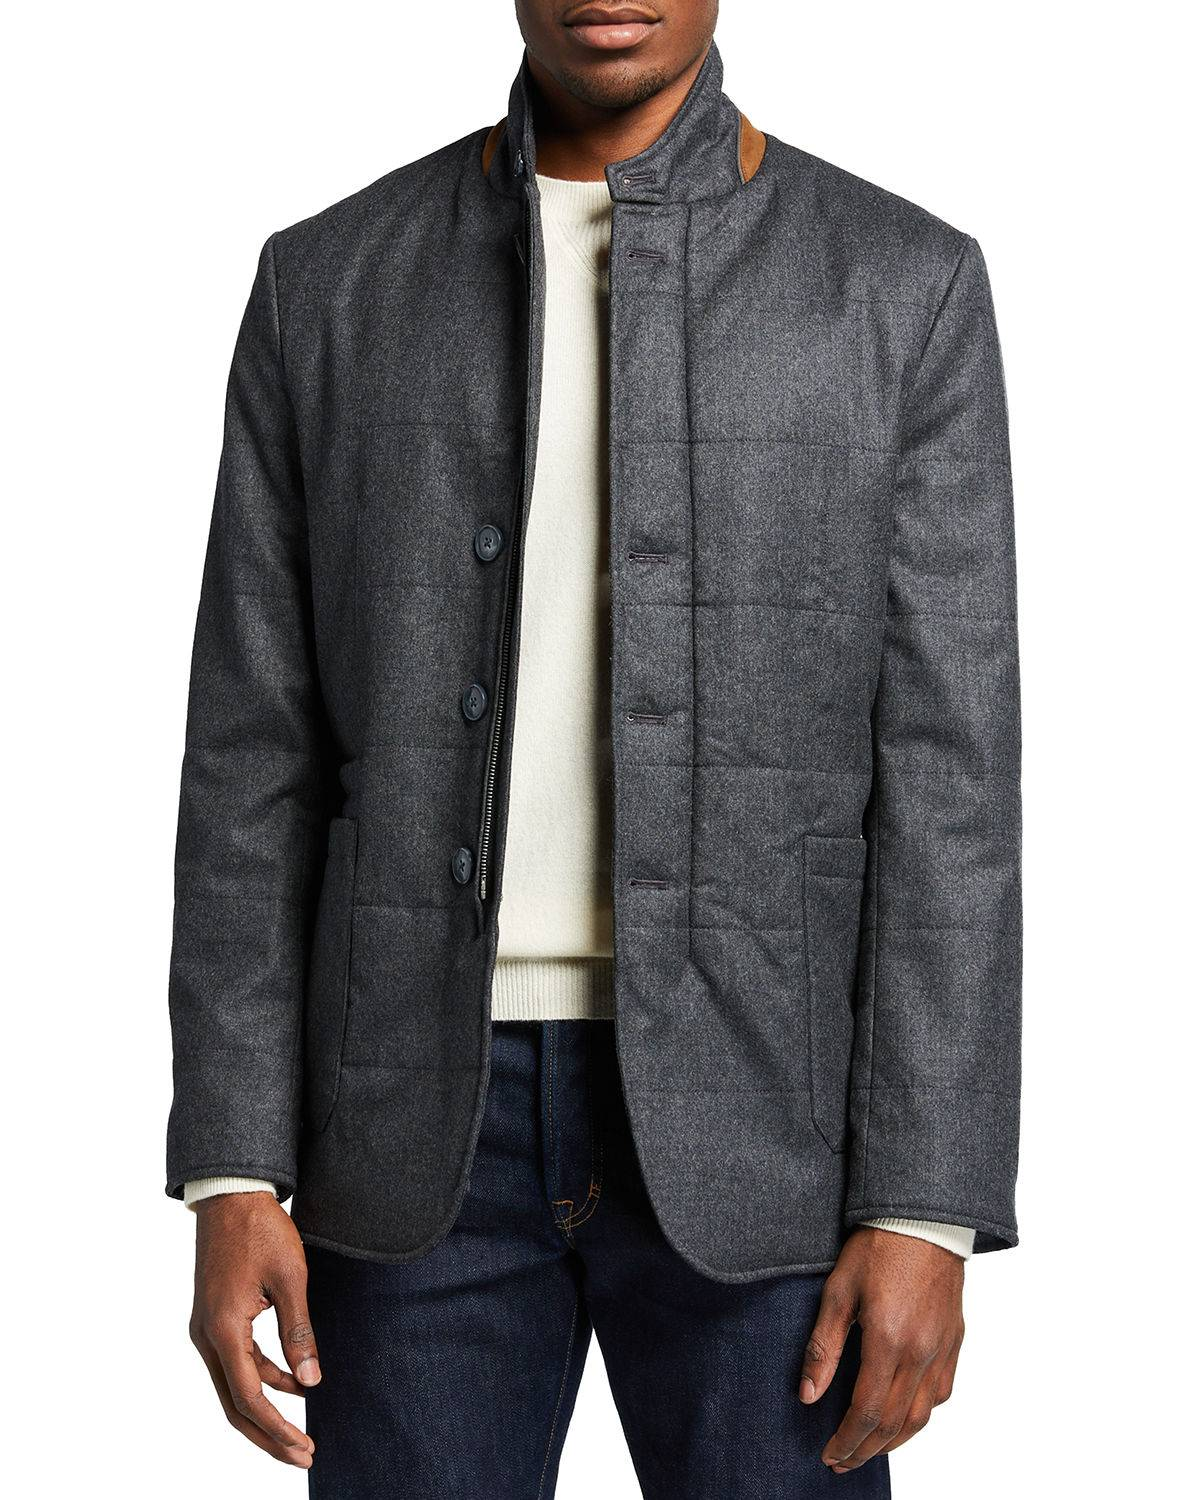 Zanella Men's Quilted Wool-Blend Car Coat - Size: Extra Large